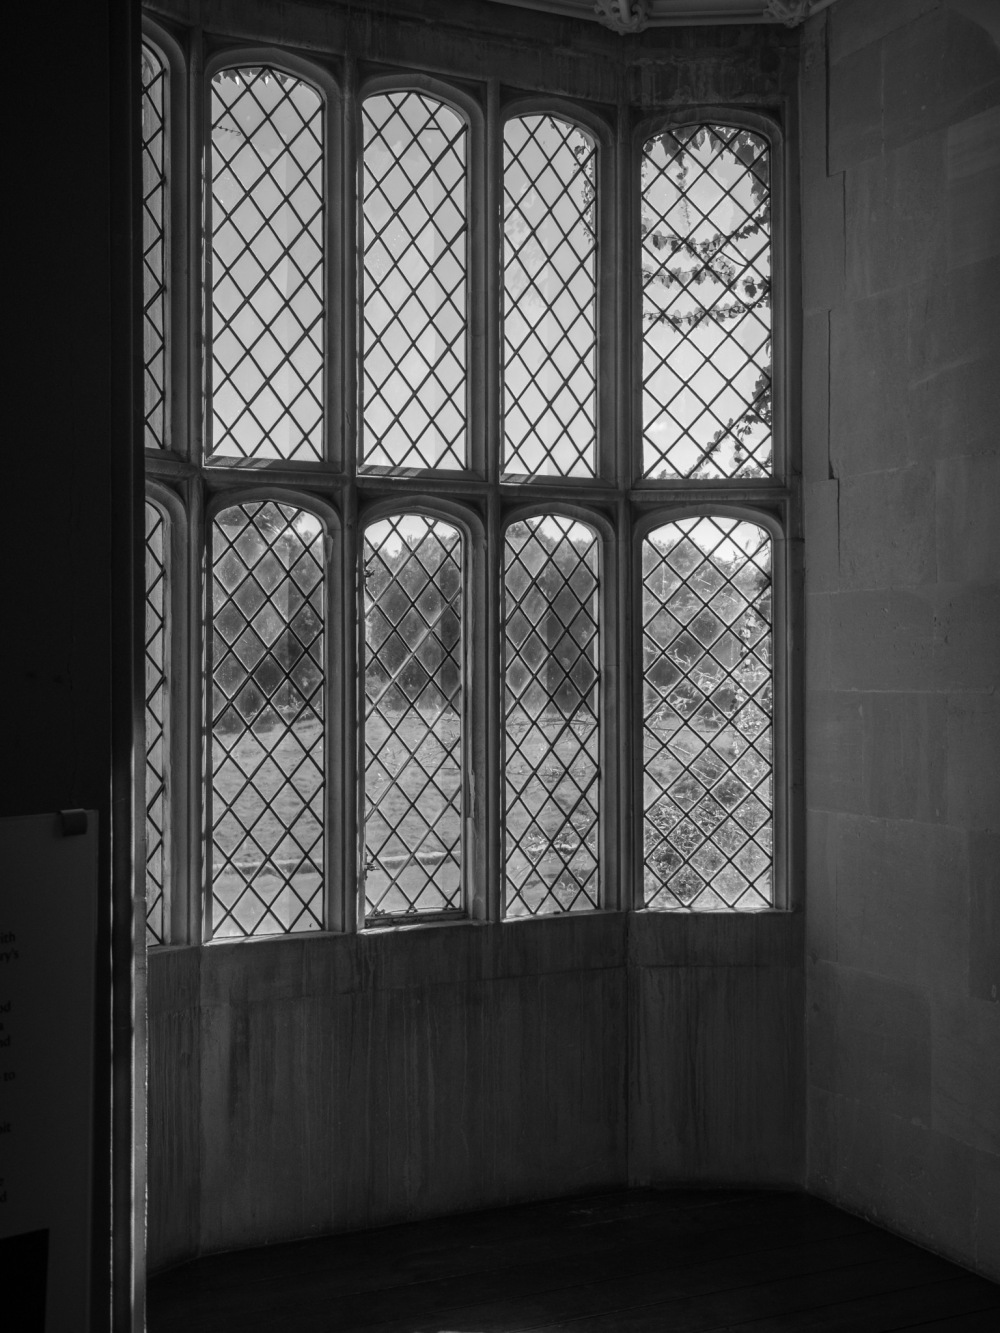 Latticed Window Lacock Abbey August 2016